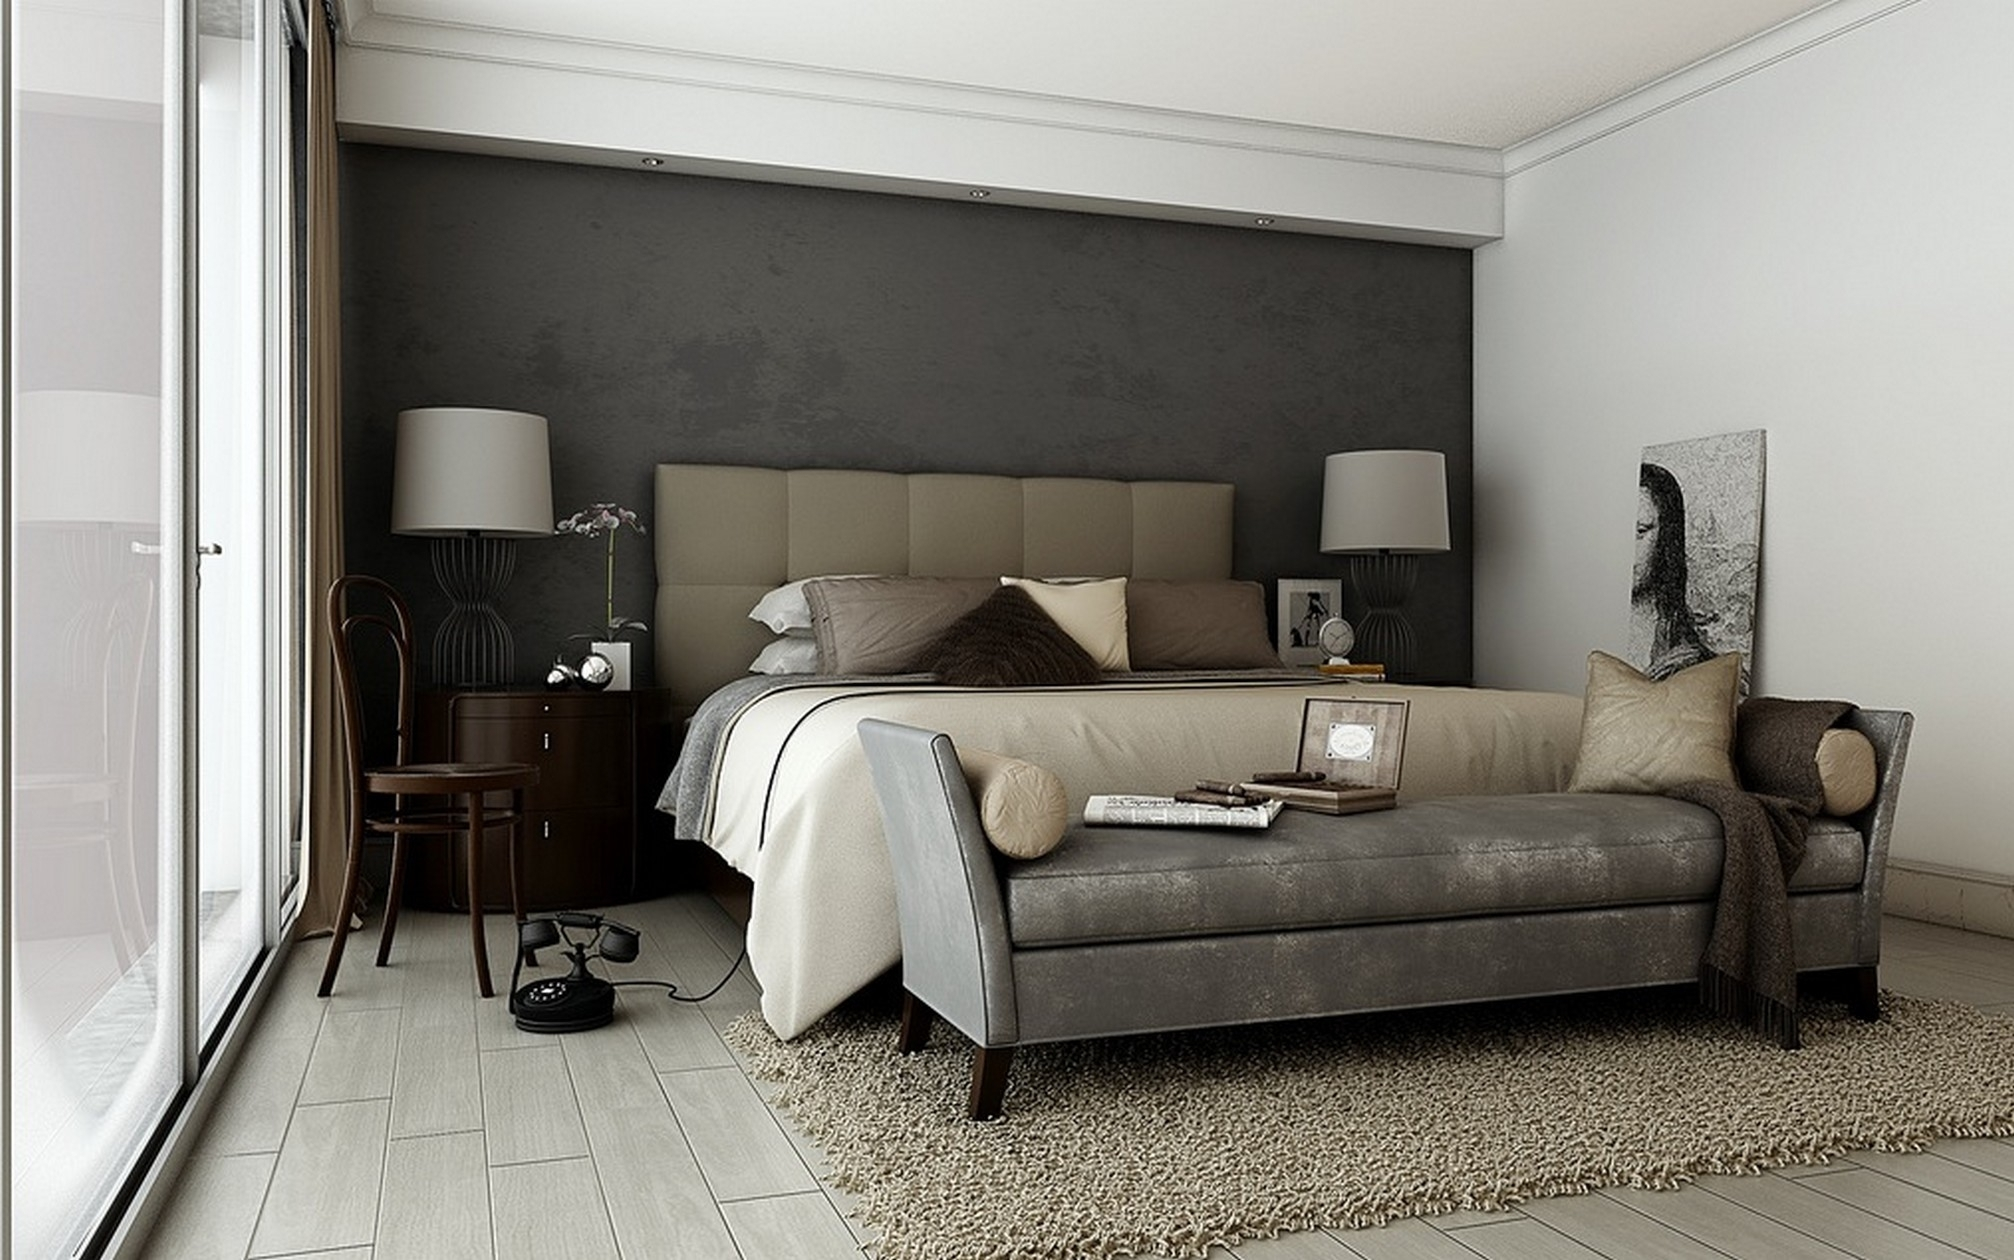 Futuristic Bedroom Design With Drum Shape White Double Table Lamp In Most Popular Gray Wall Accents (View 8 of 15)